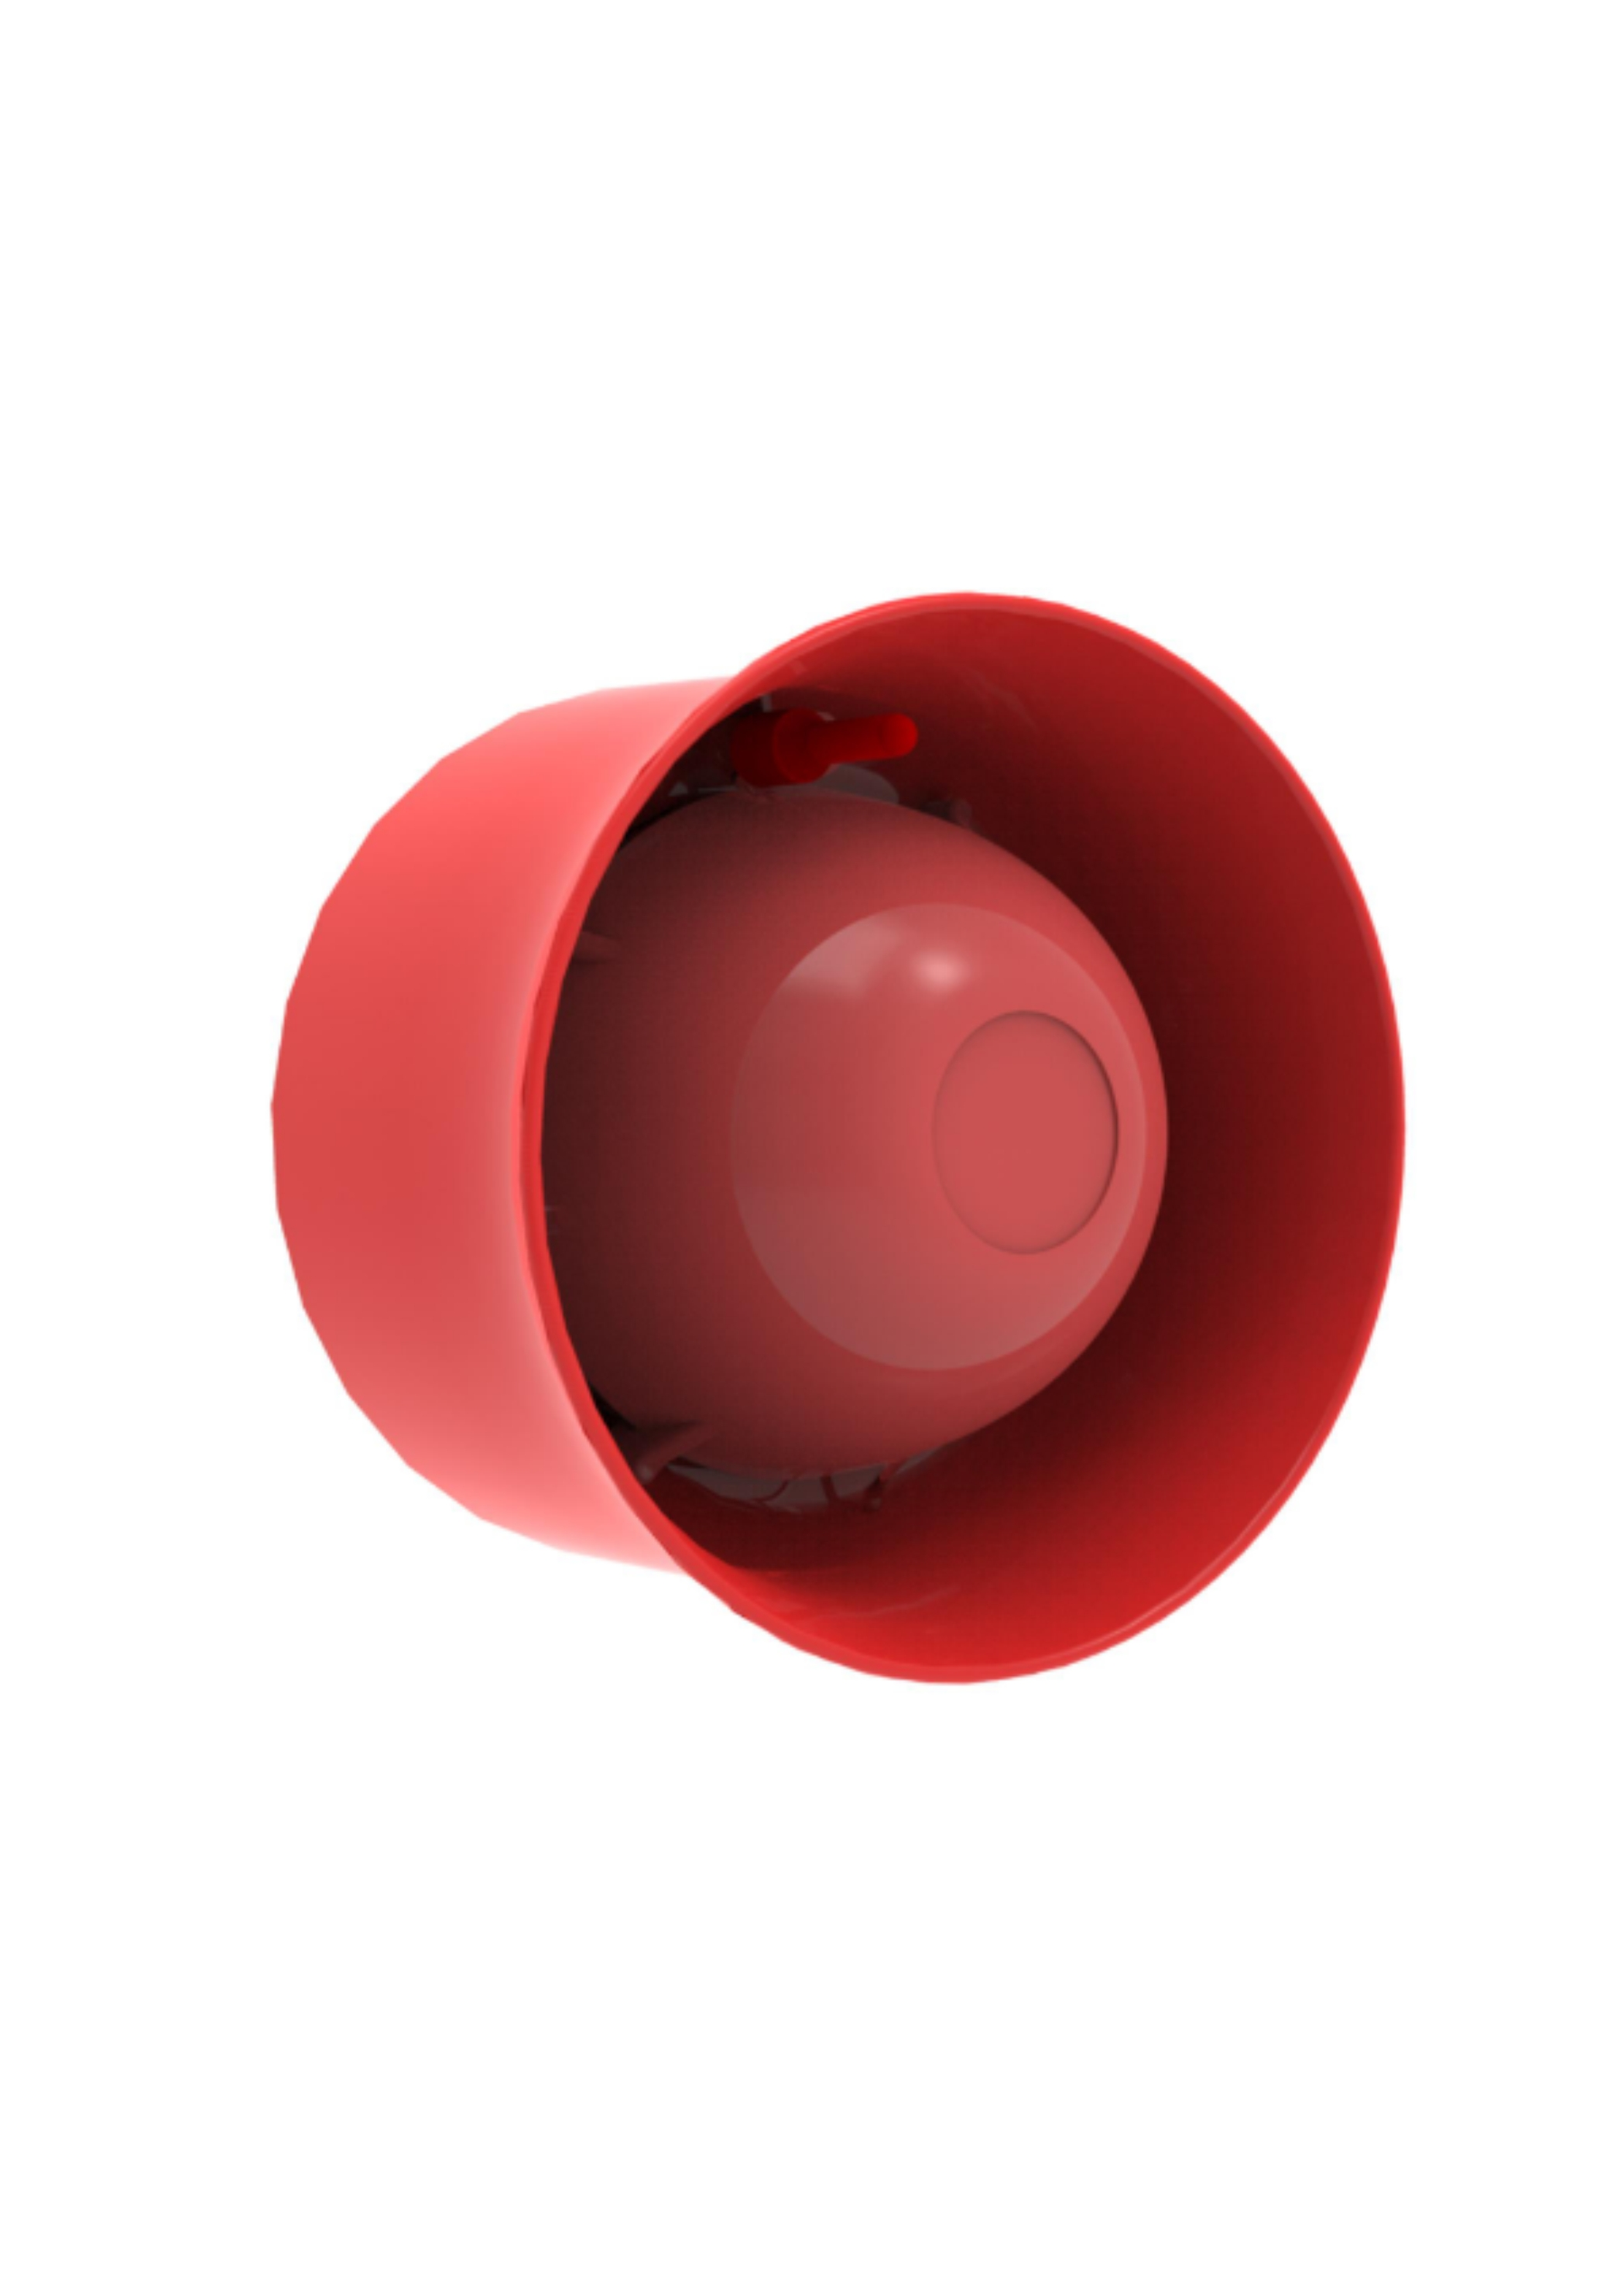 Wall Sounder - Red case 1460050-00